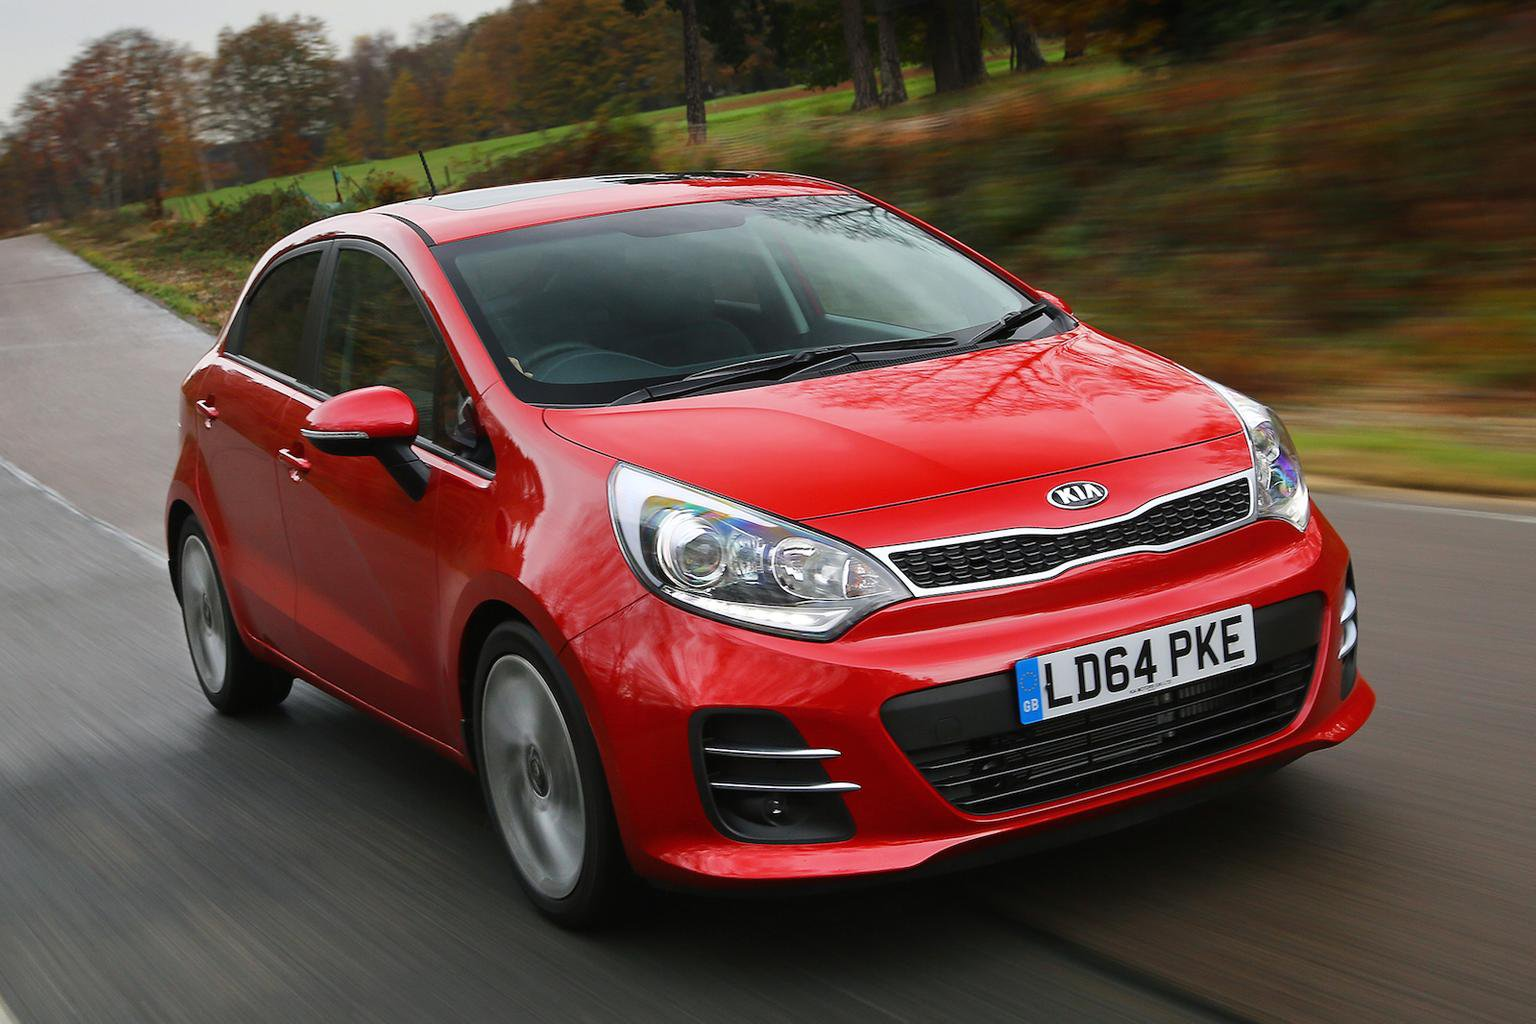 2015 Kia Rio - prices, engines, specs